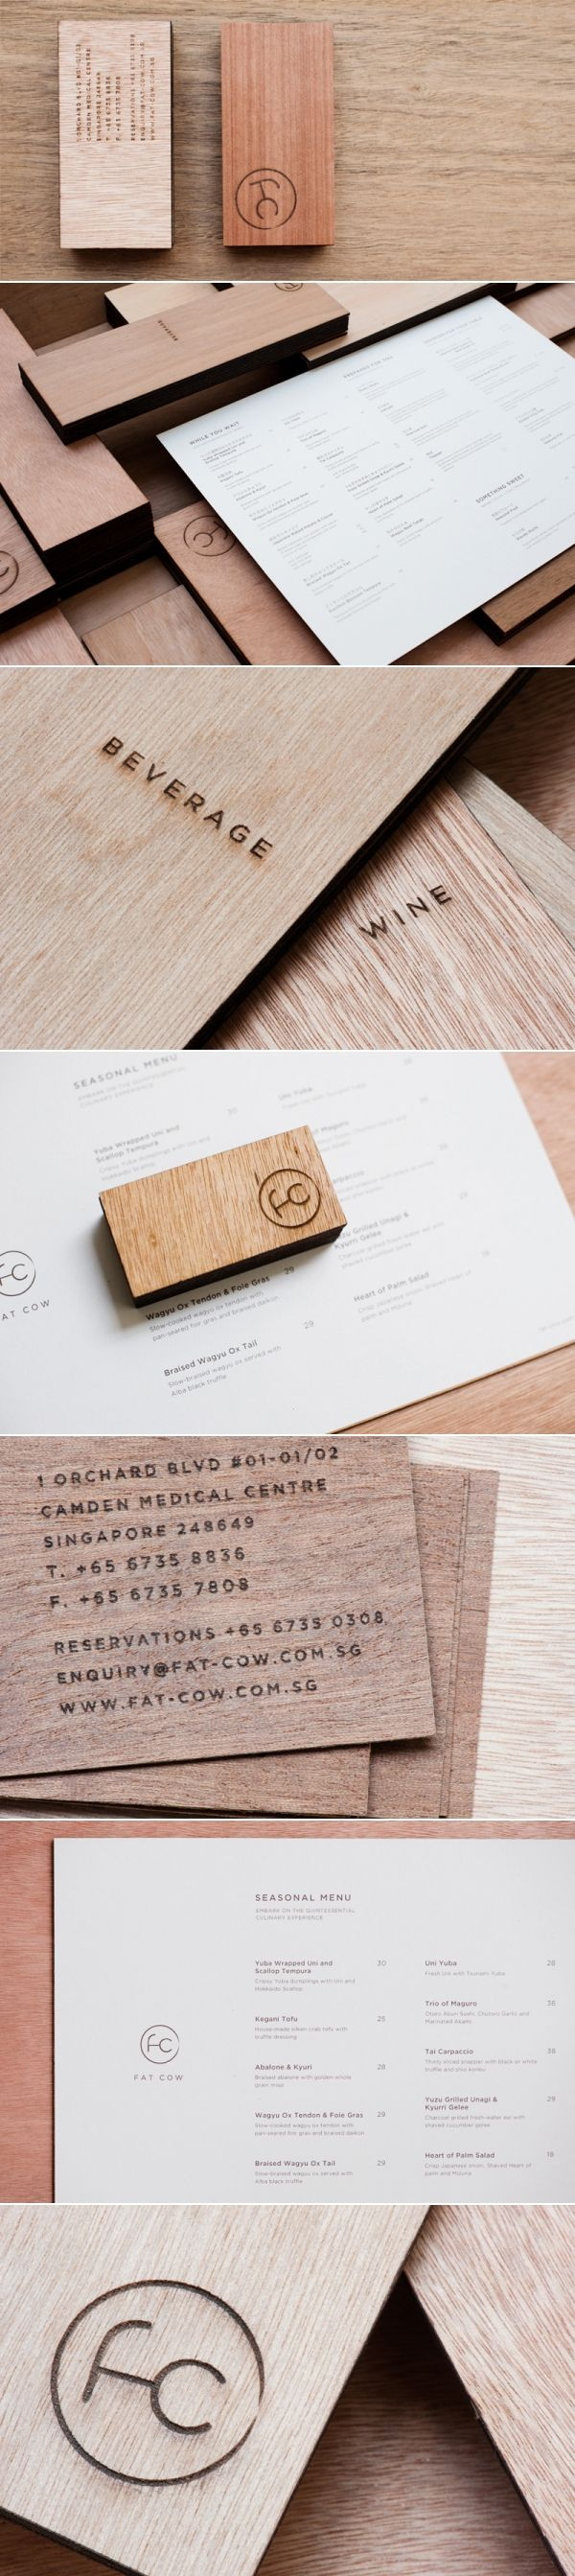 Corporate design logo business card identity wood meat